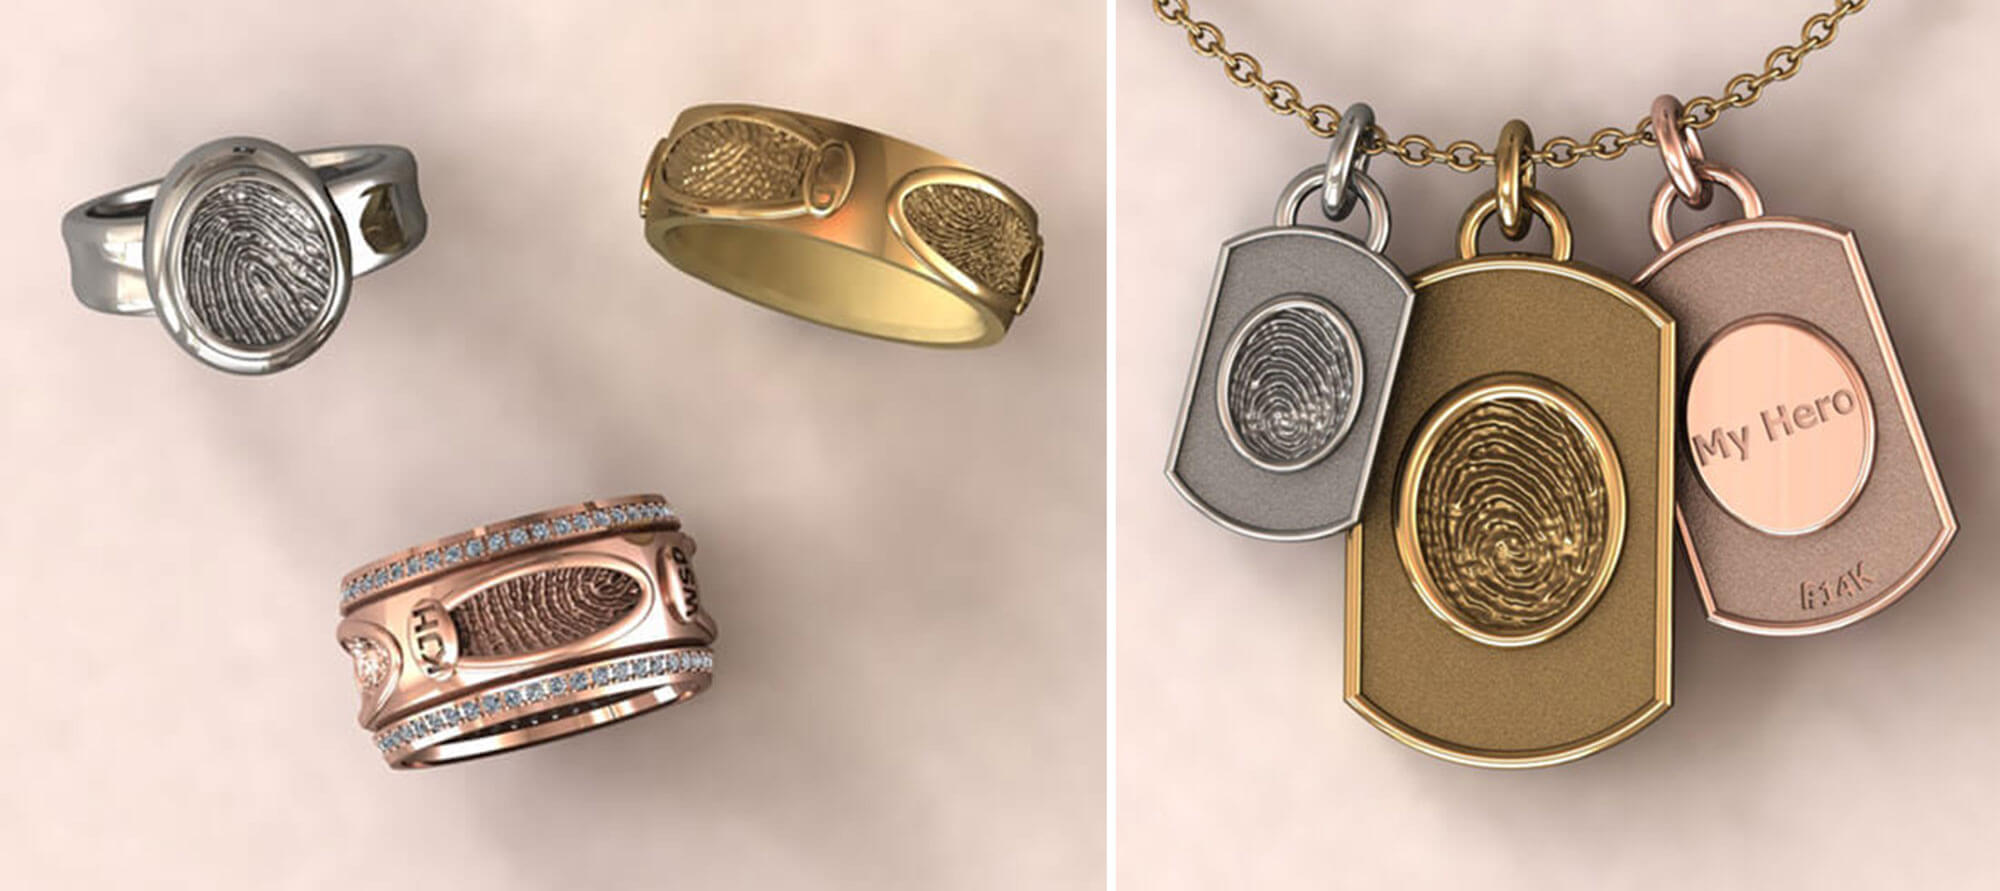 Grouping of custom fingerprint rings and fingerprint necklace charms